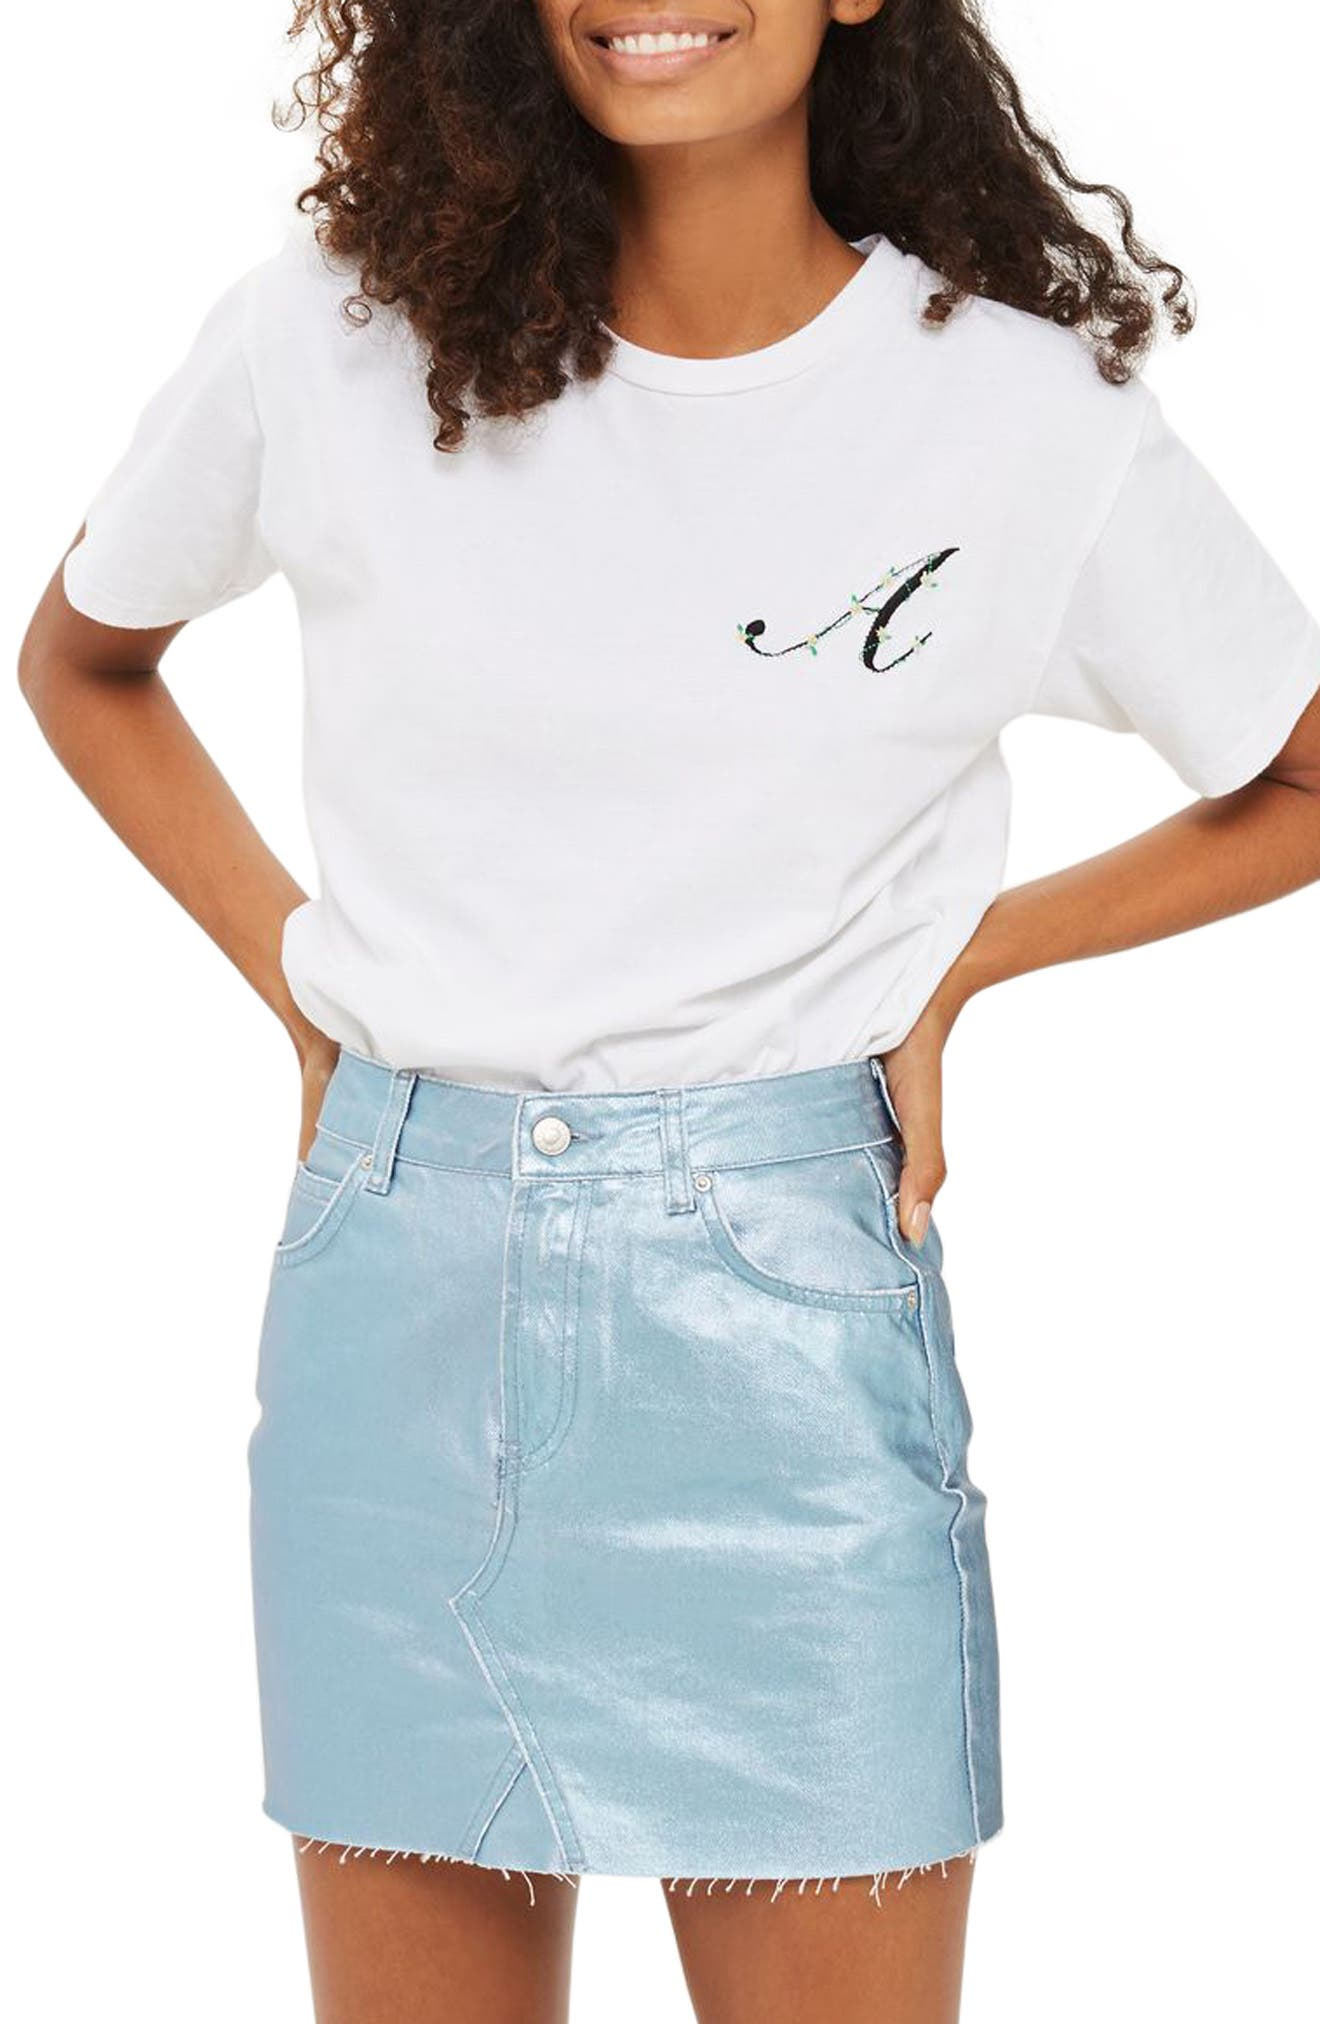 TOPSHOP Initial Embroidered Tee